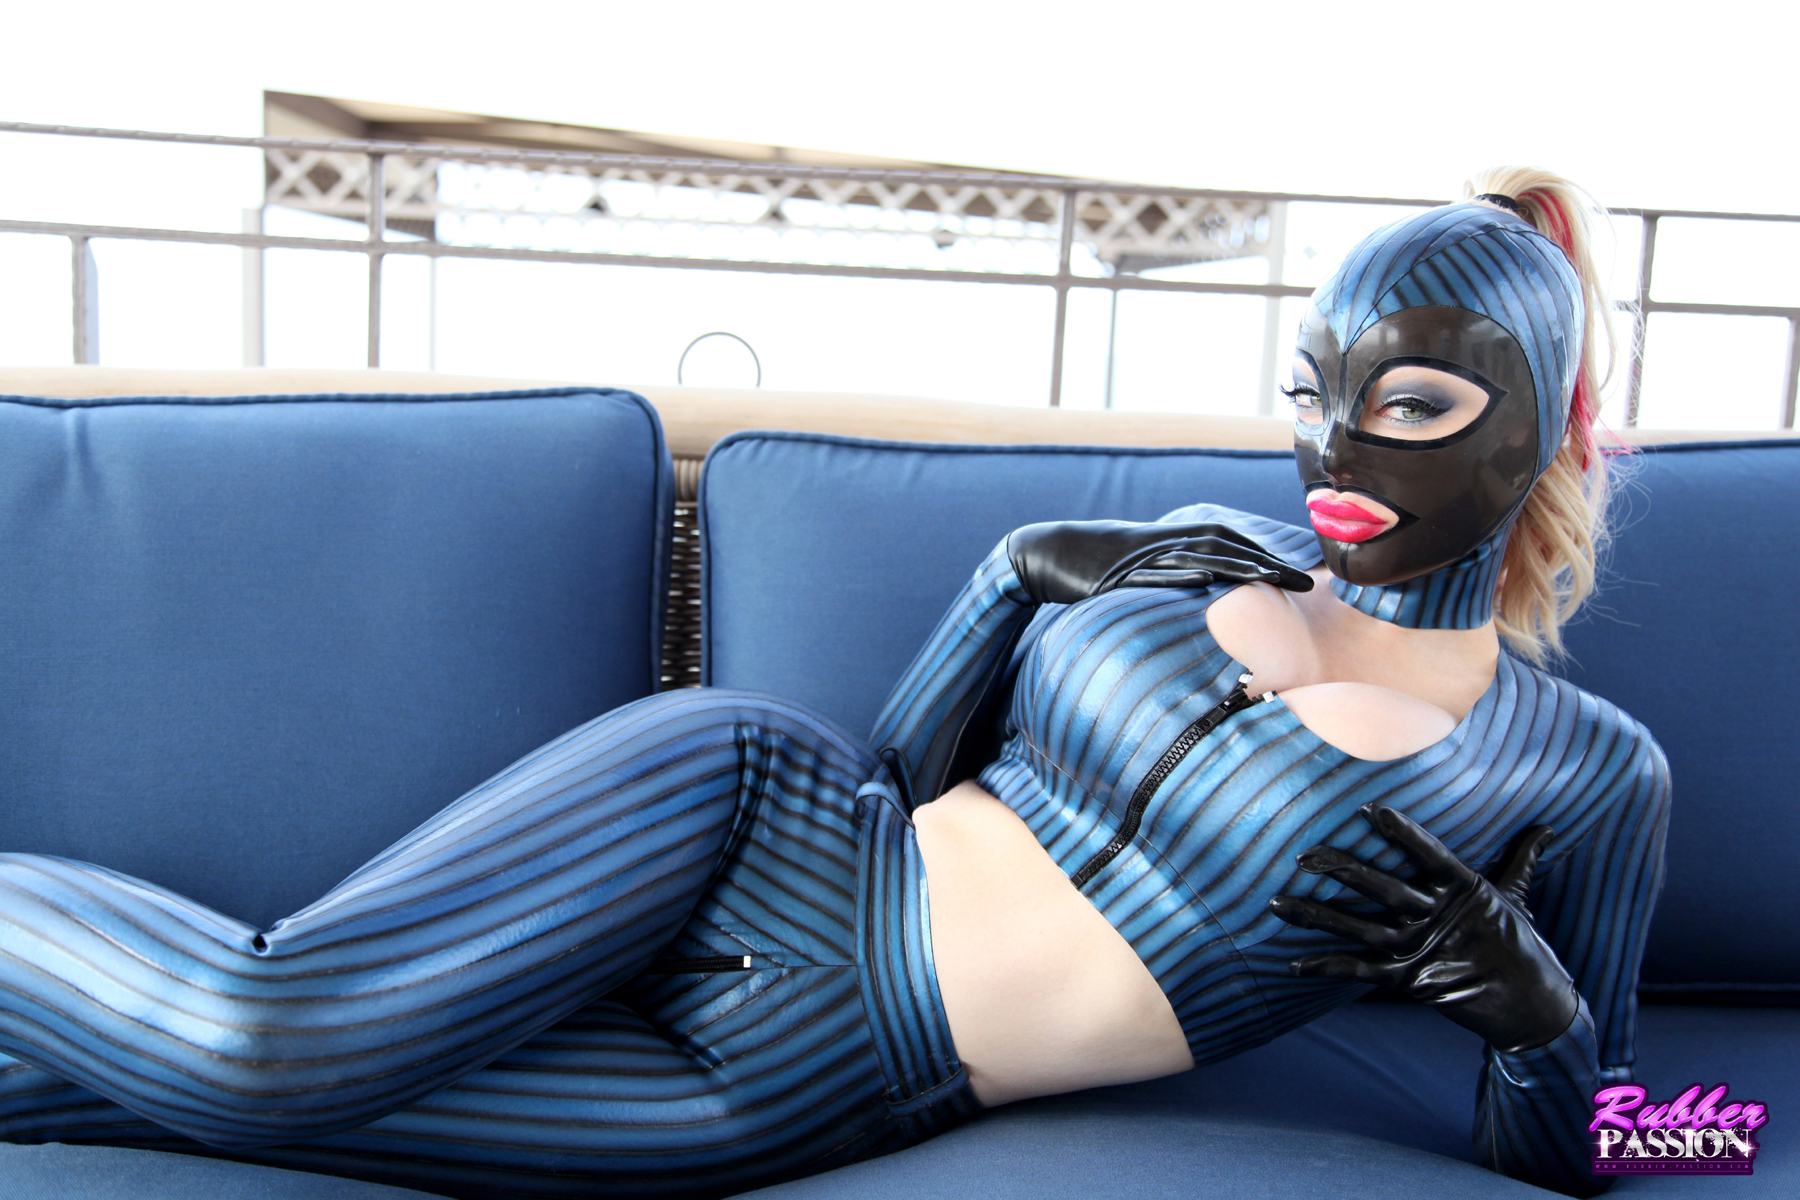 rubber passion free